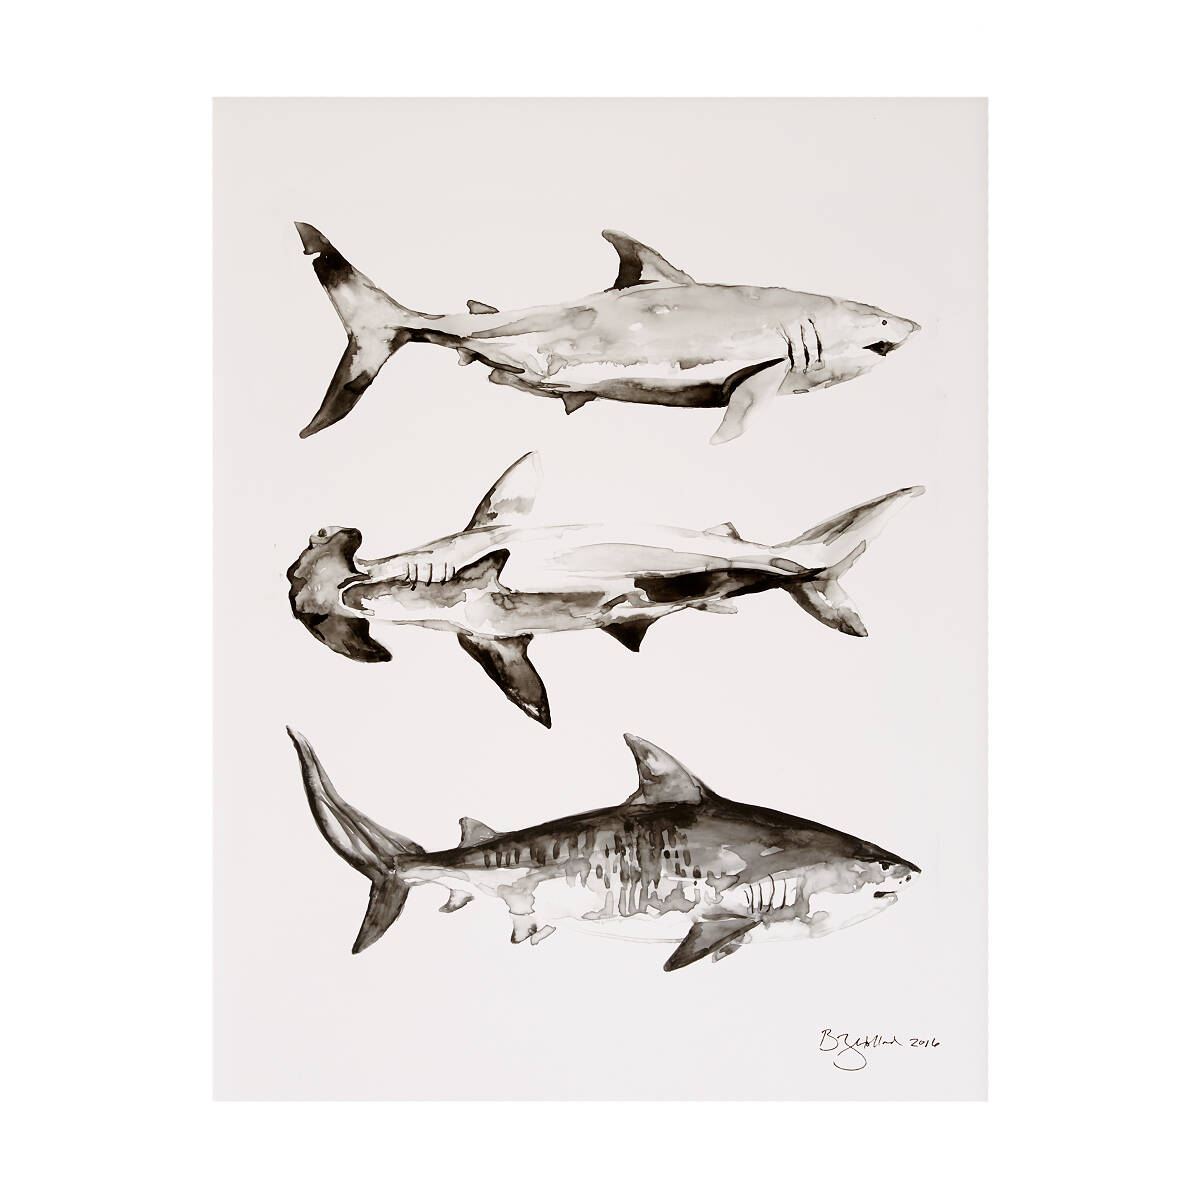 Uncategorized Shark Images To Print shark print pictures of sharks week uncommongoods 2 thumbnail